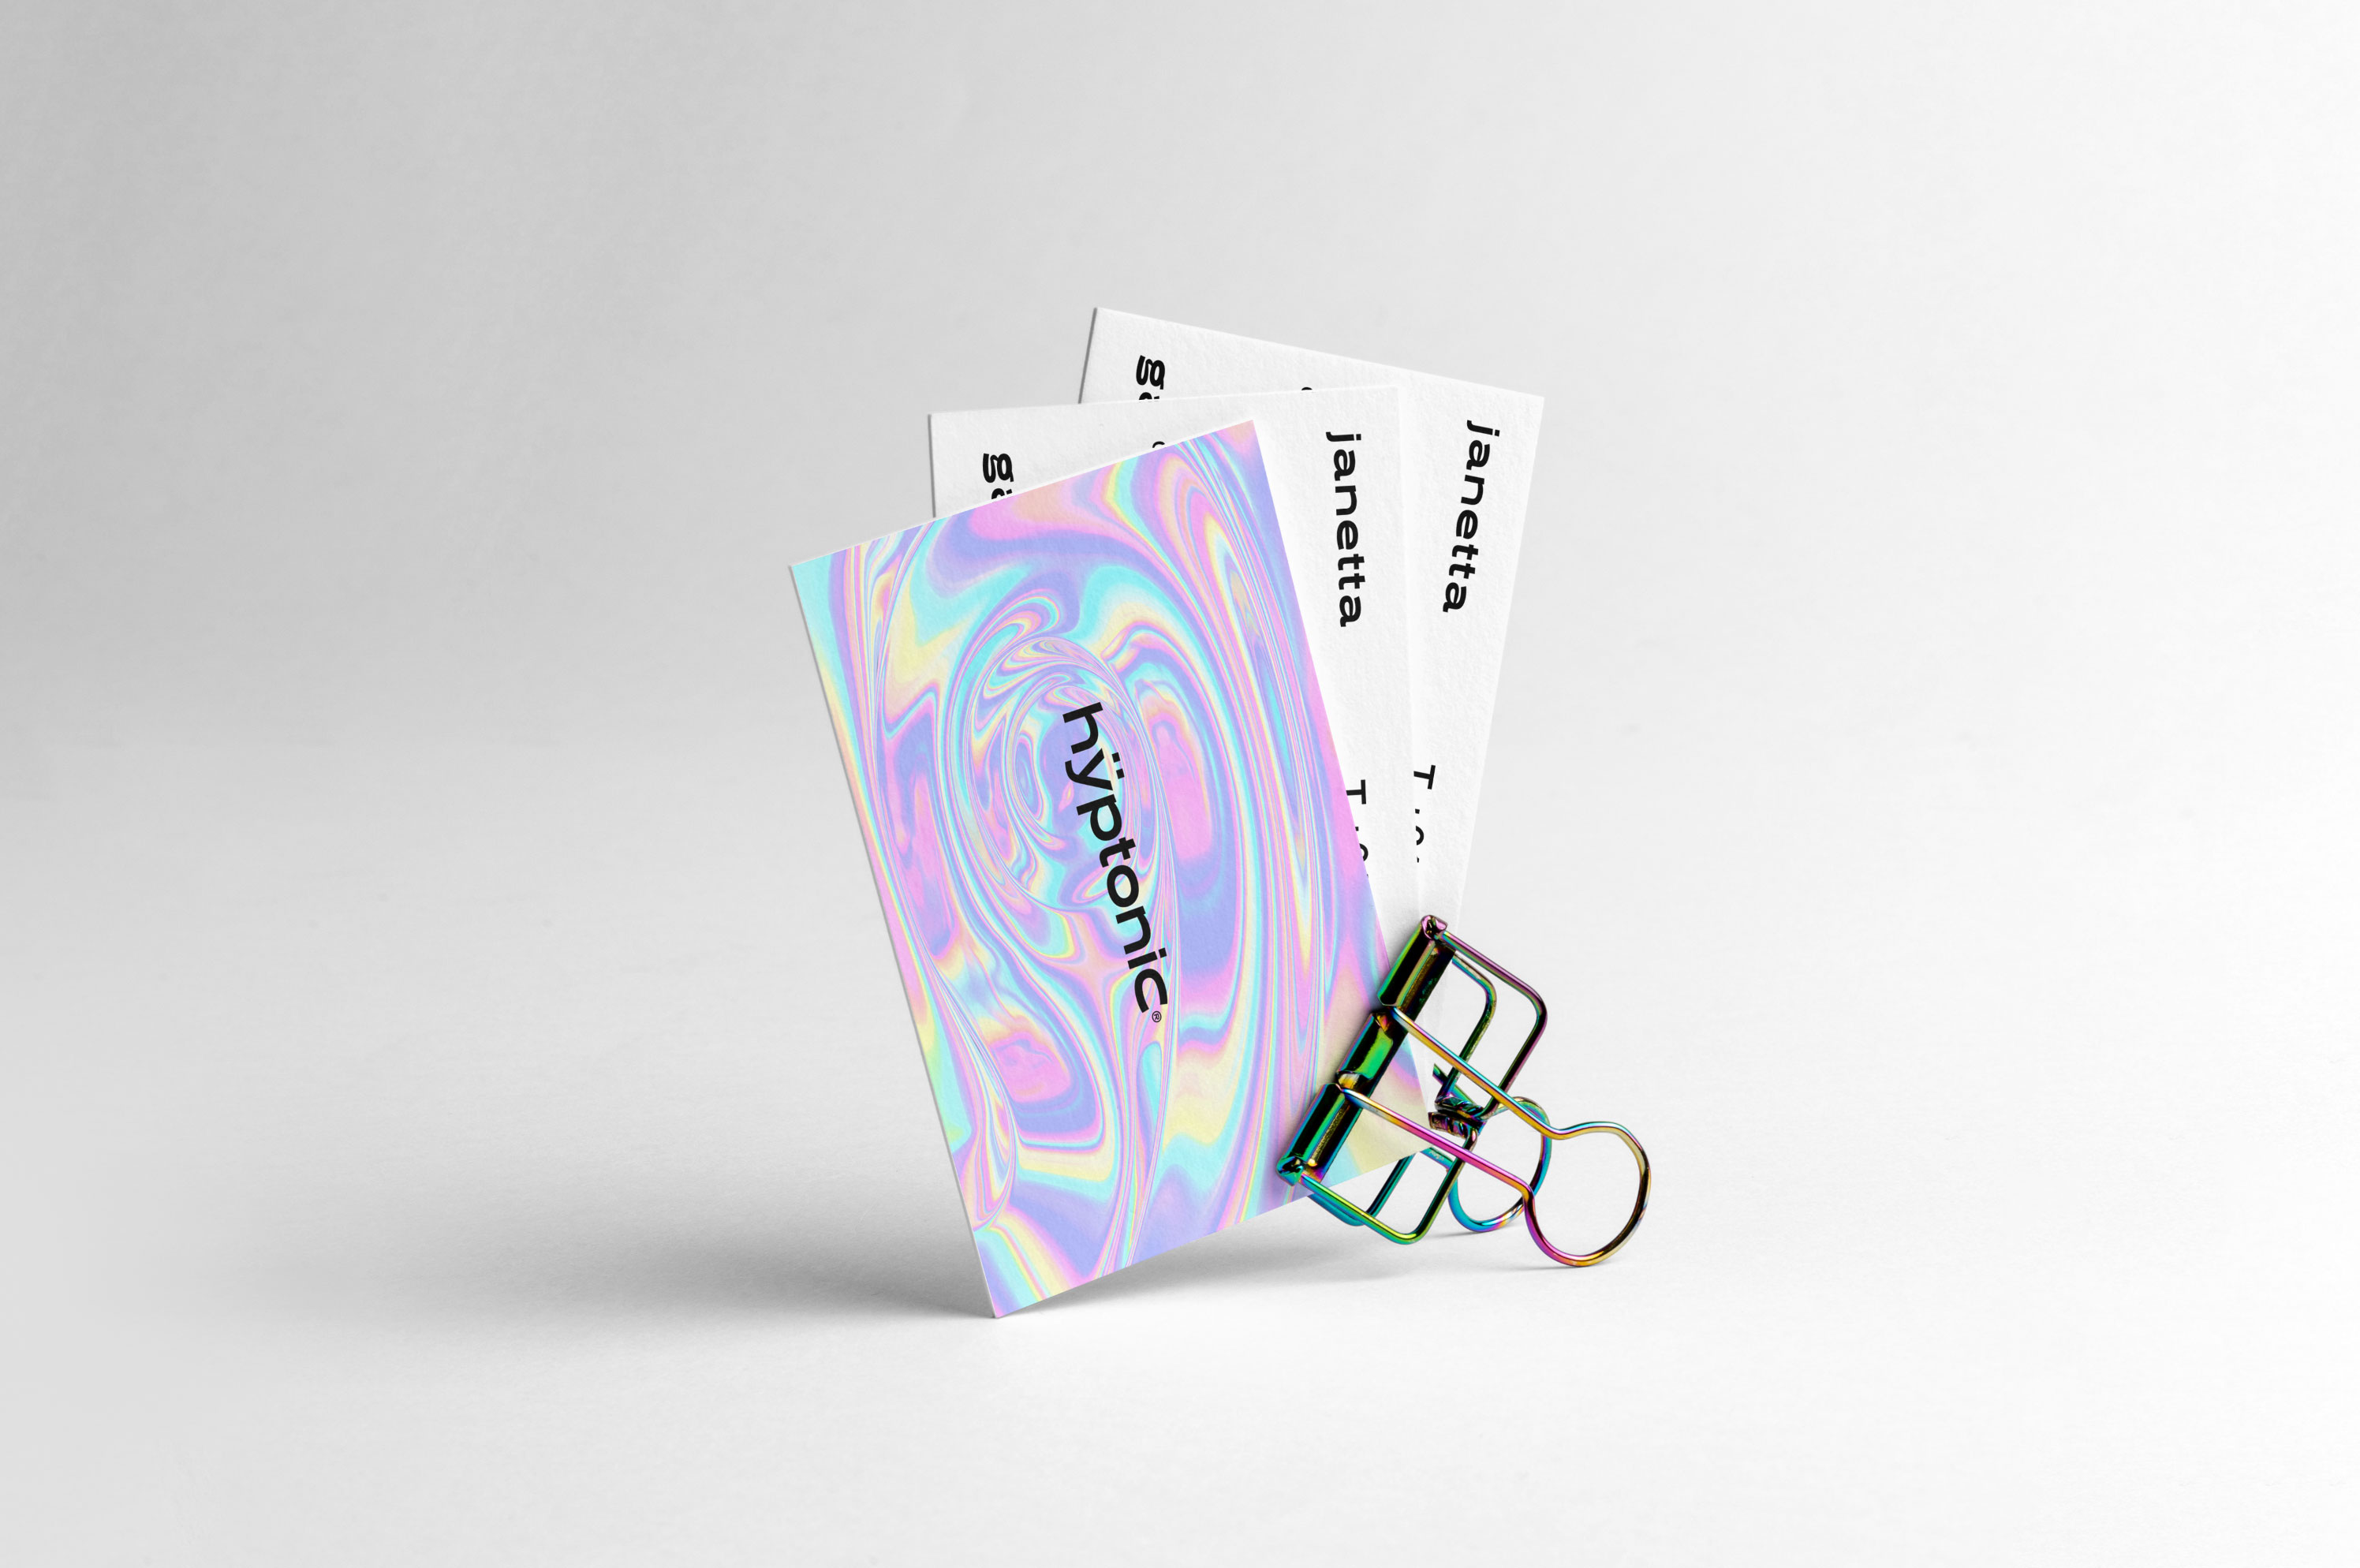 Hyptonic businesscard